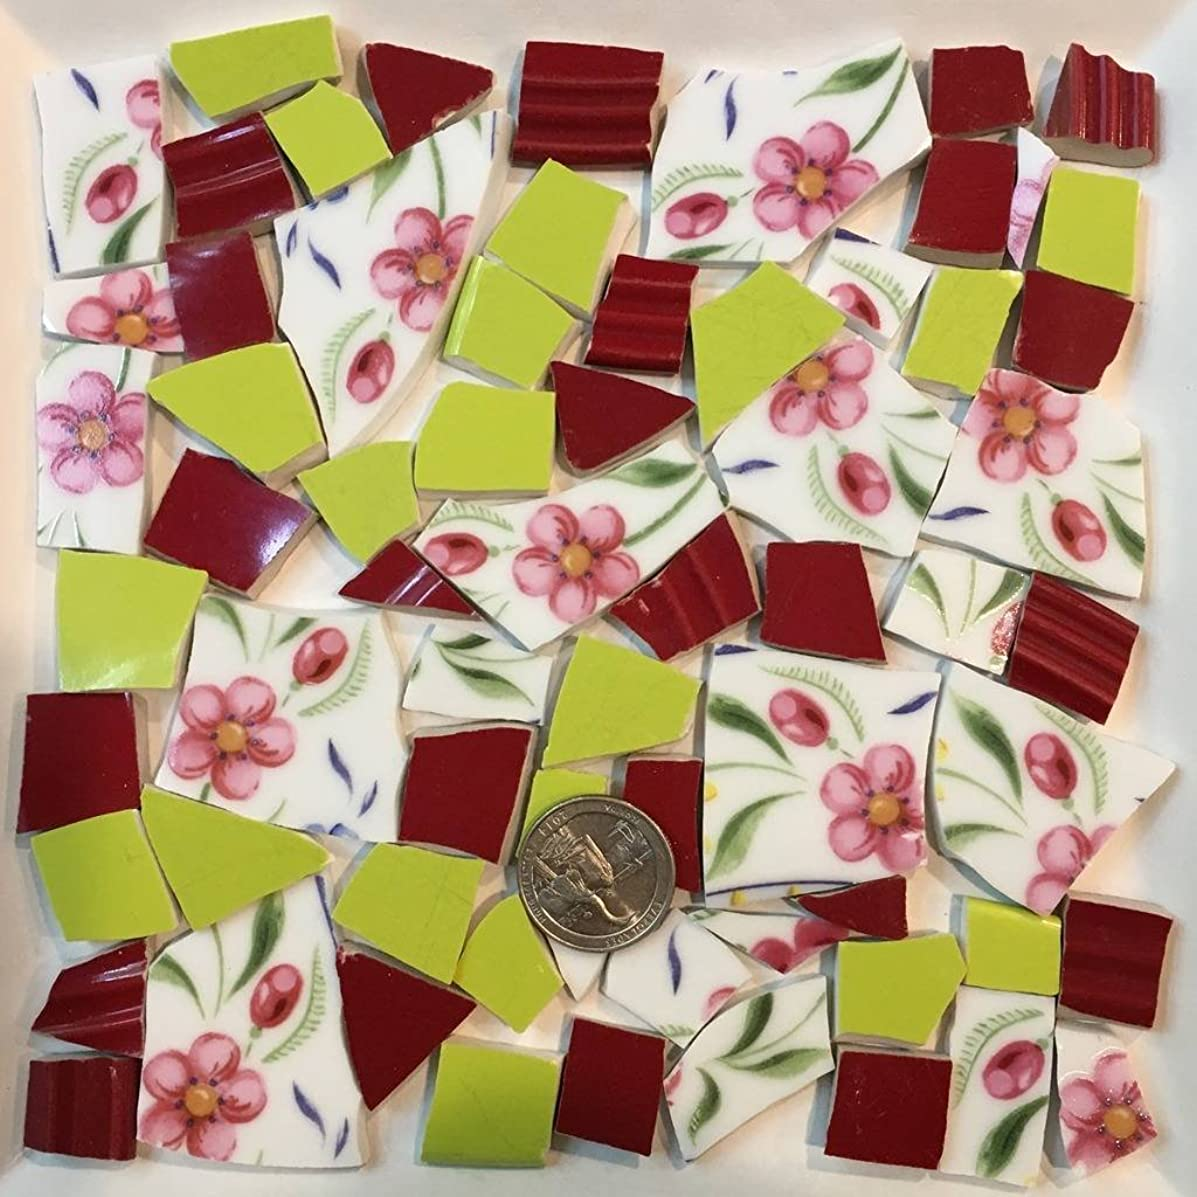 Mosaic Tile Art Supply for Mosaics & Crafts ~ Color Coordinated Set with Pink Flower Tiles(T#559)